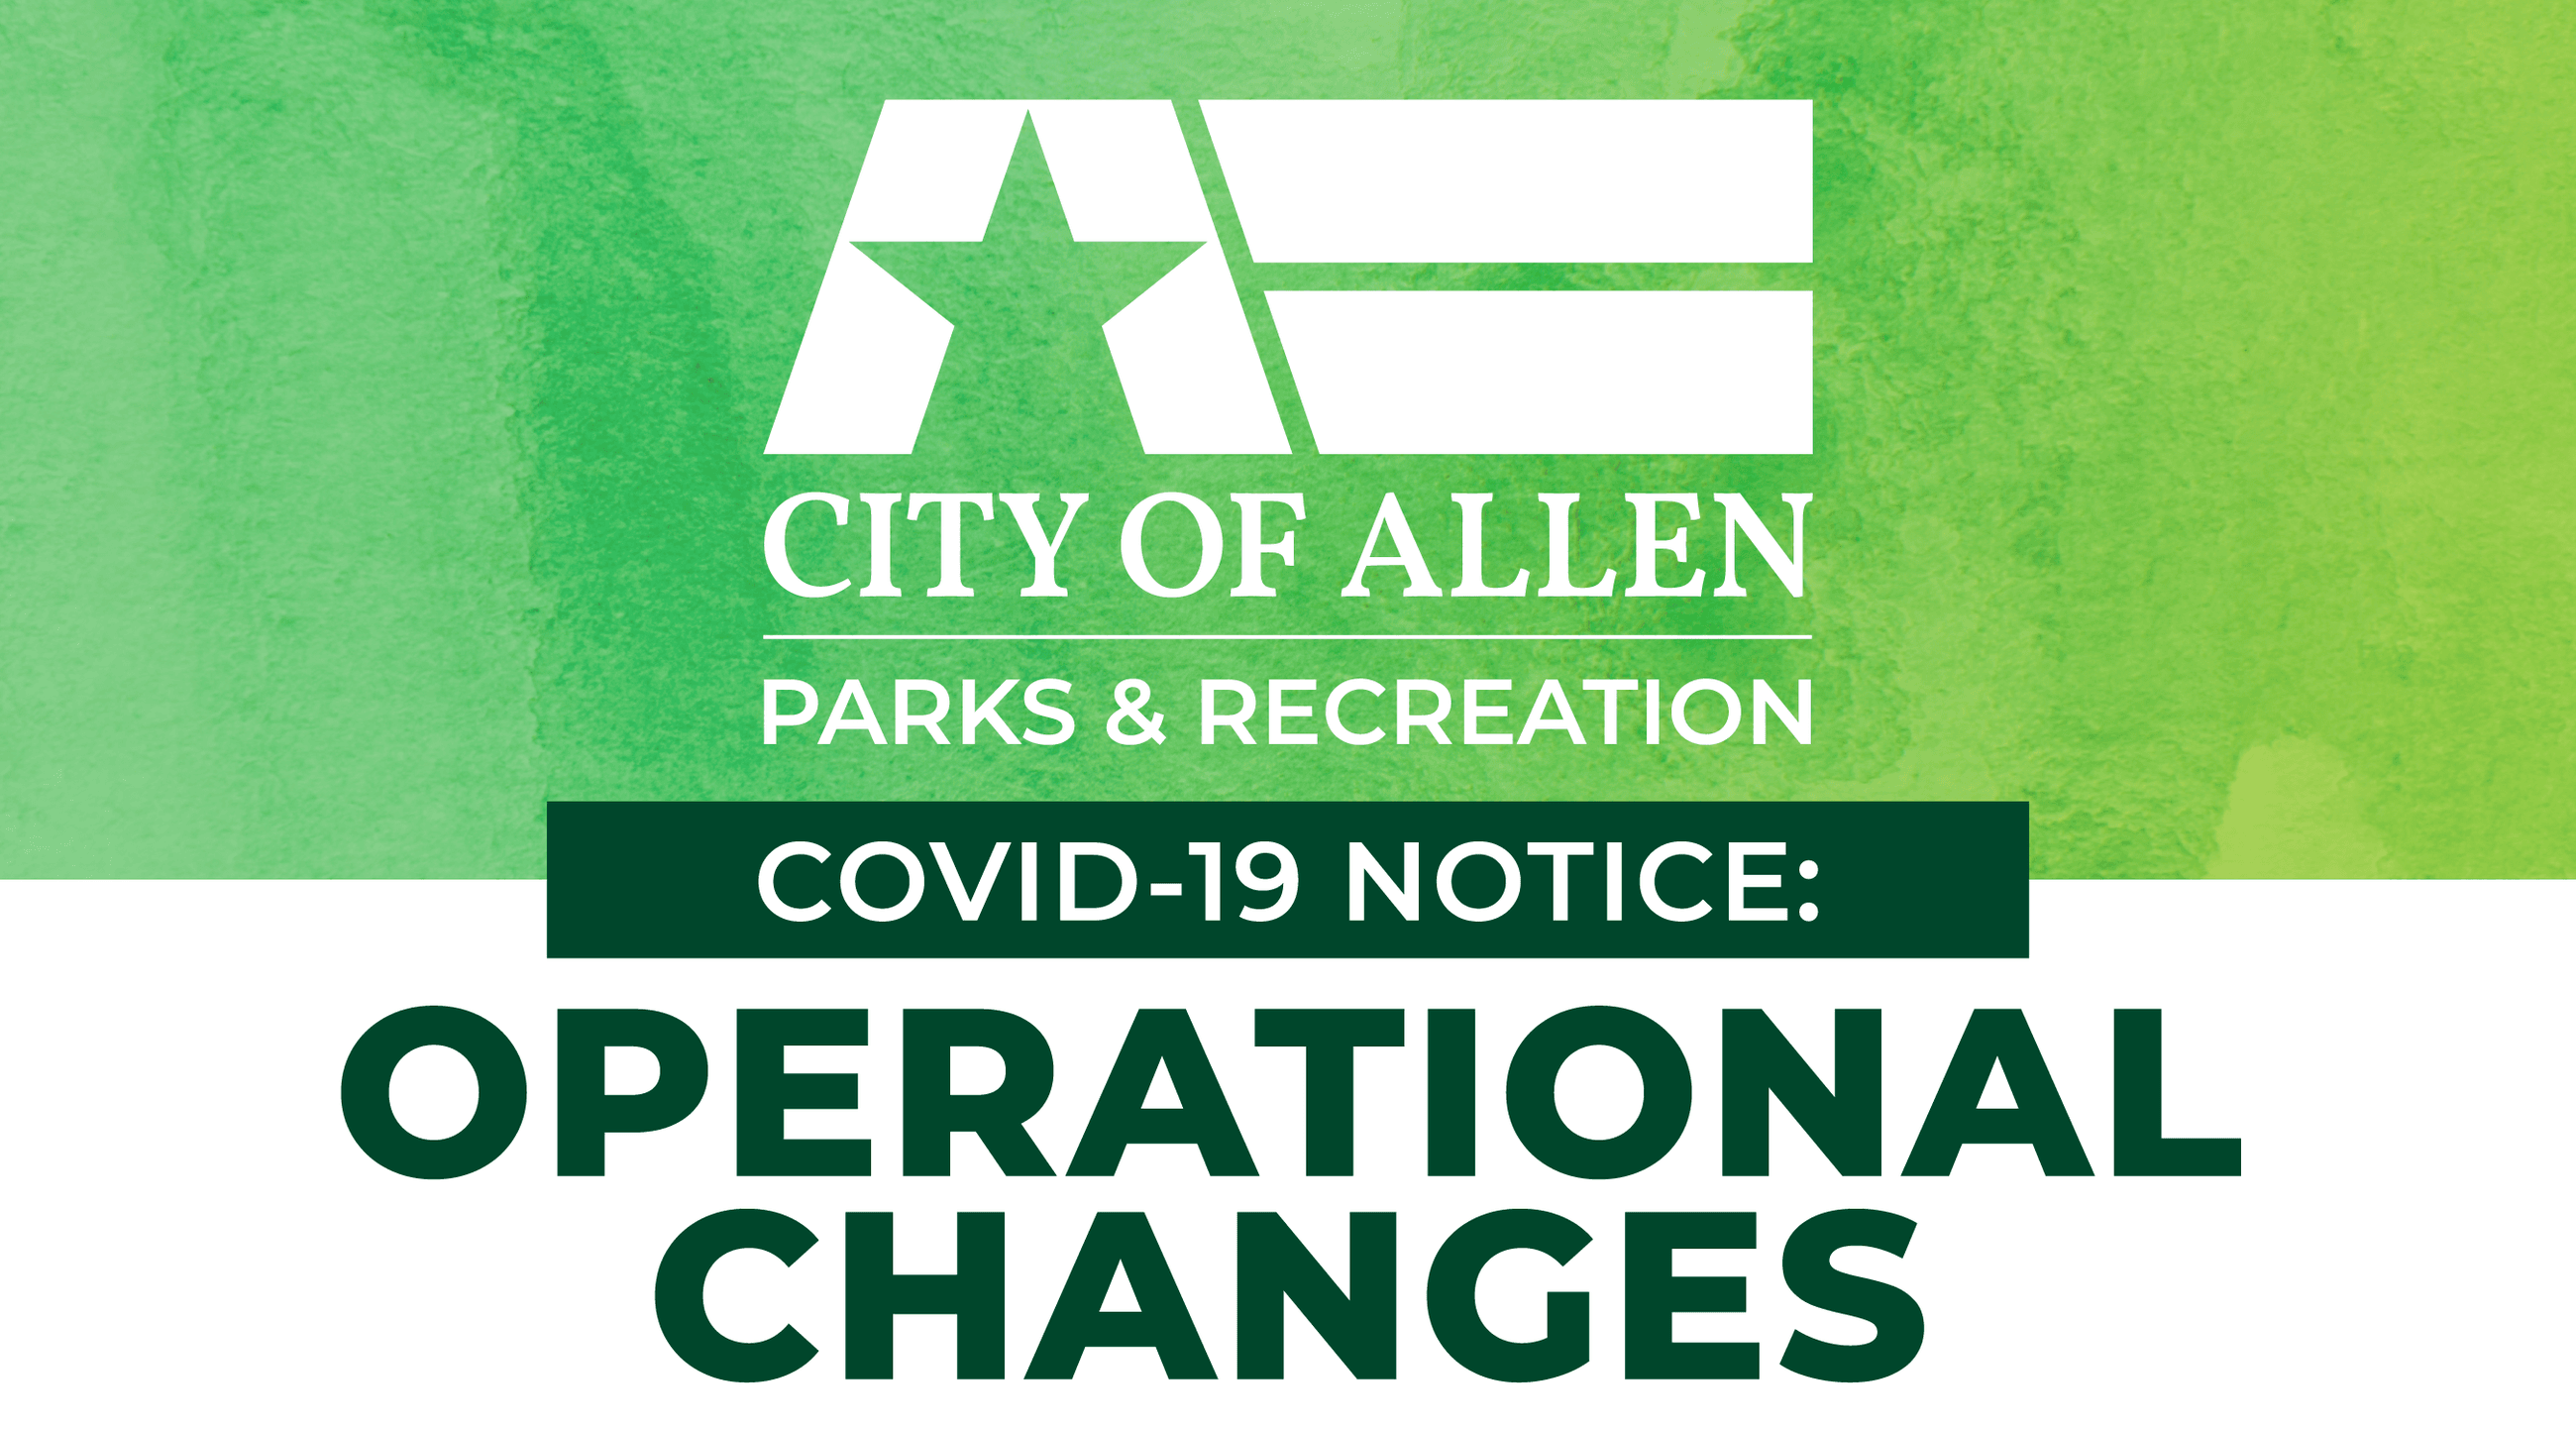 Graphic - Parks and Recreation COVID-19 Operational Changes